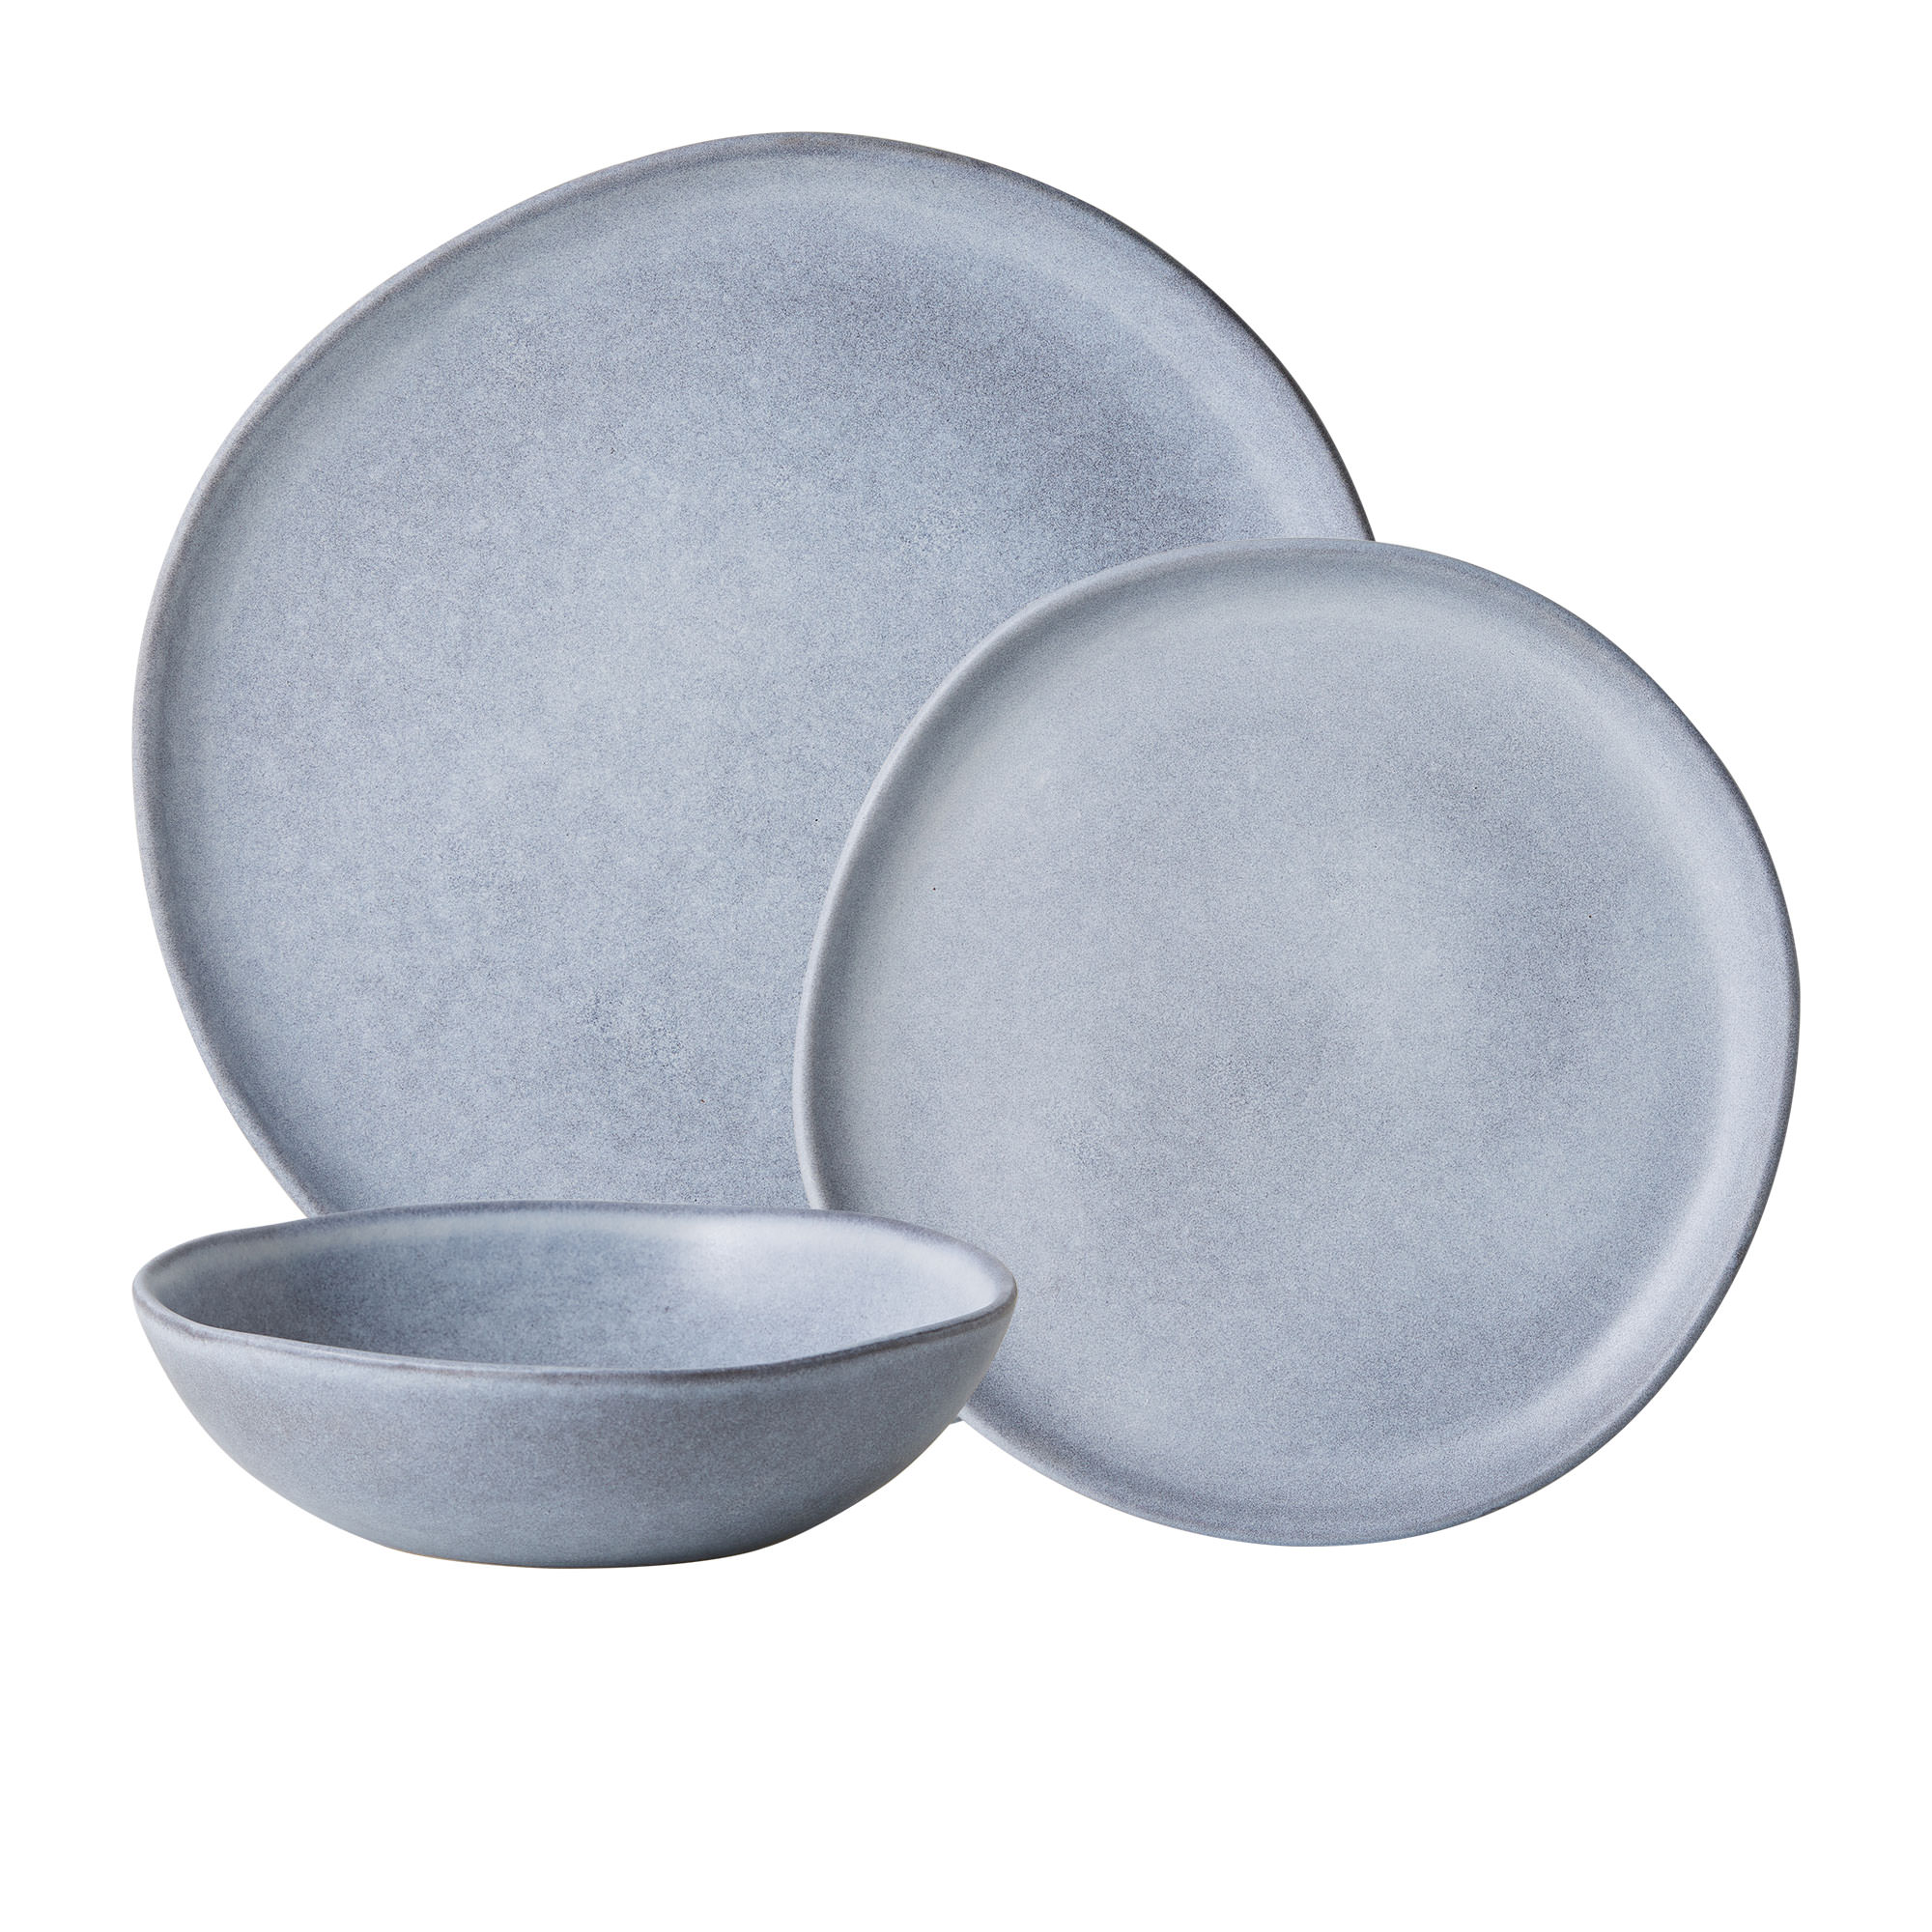 Salisbury & Co Capri 12pc Dinner Set Light Blue